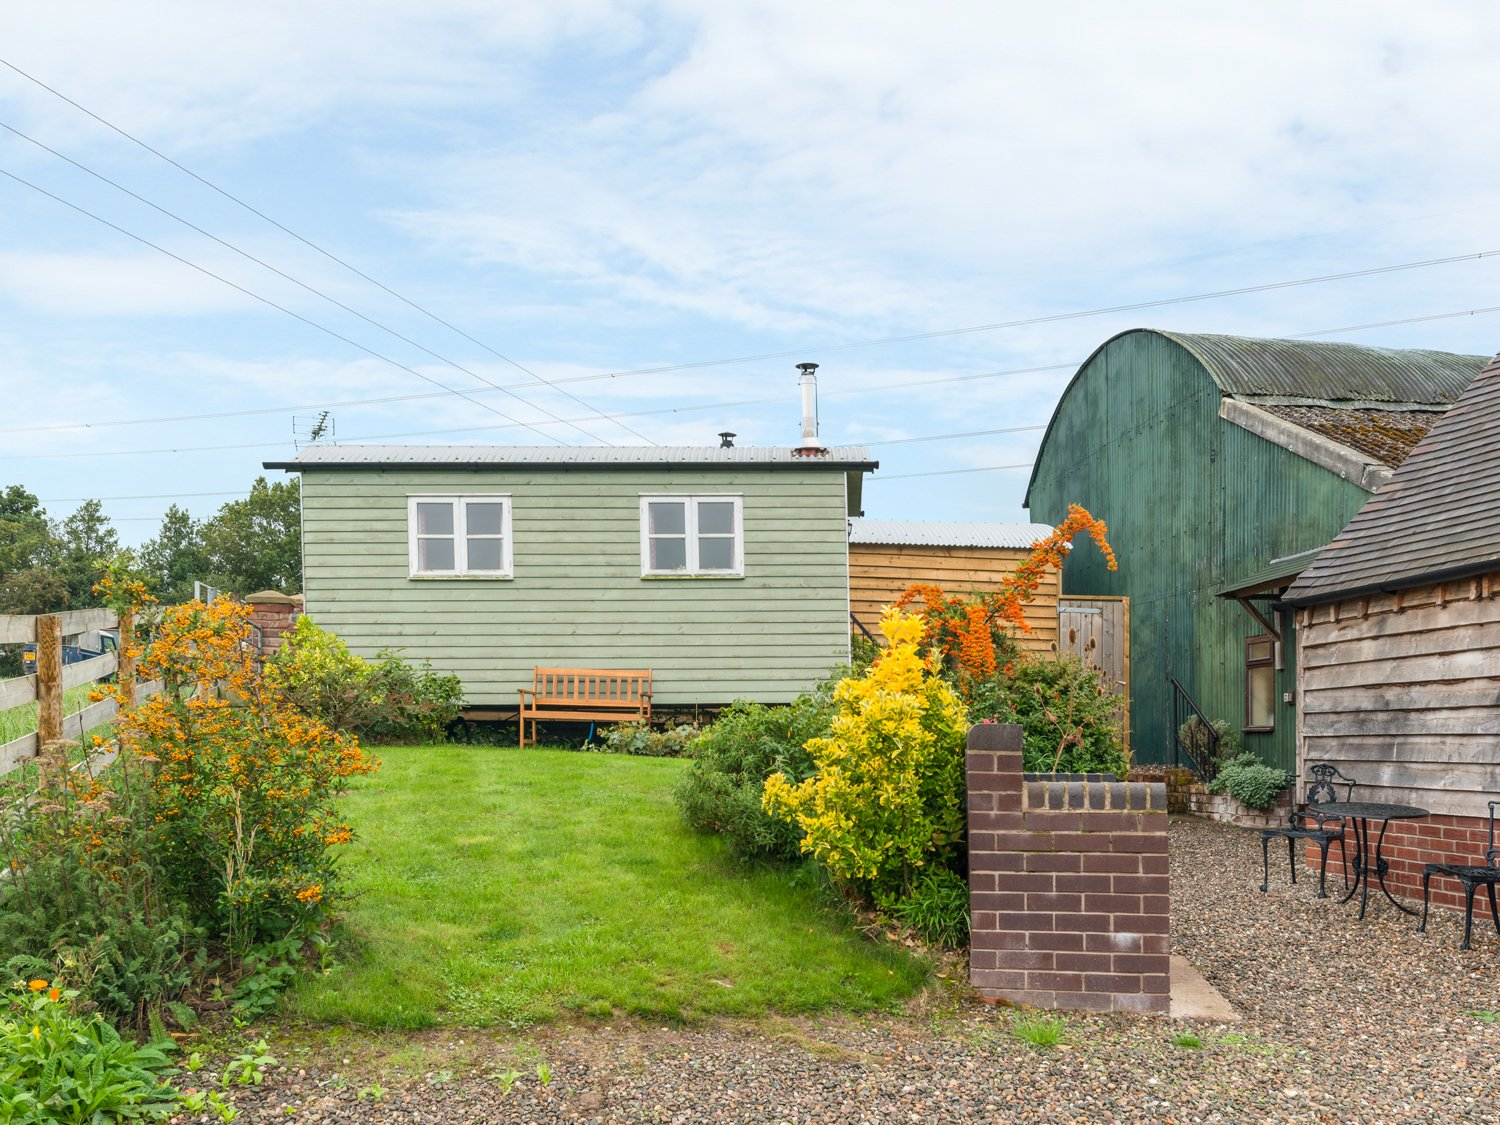 Photo of Shepherd's Hut Countryside Cottage